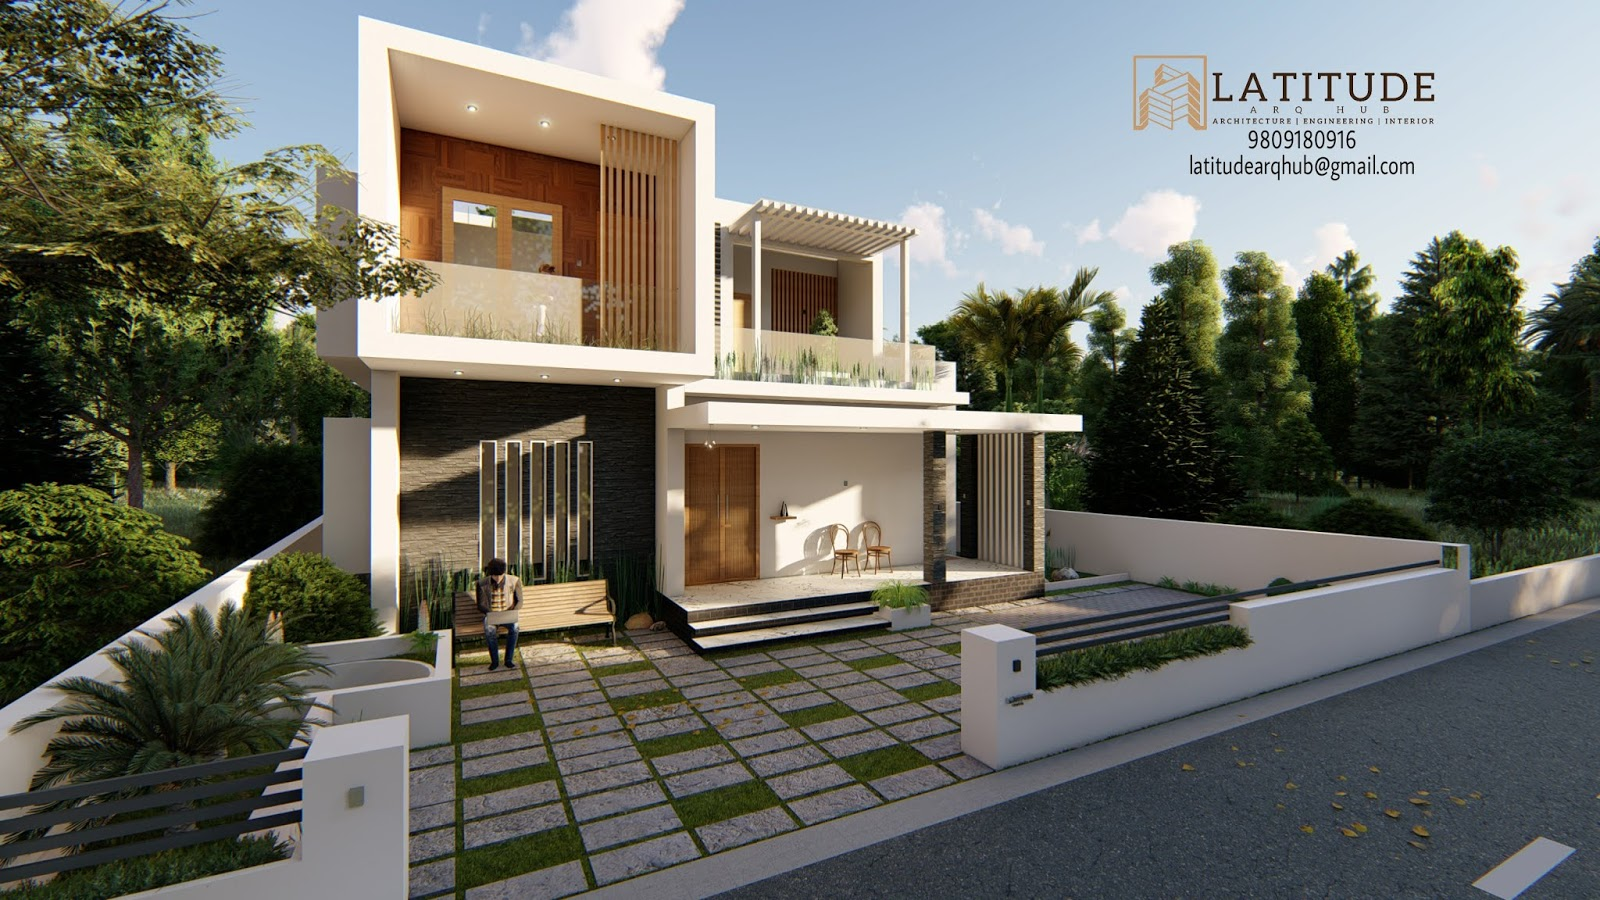 4 bedroom 2 story house plans Kerala style